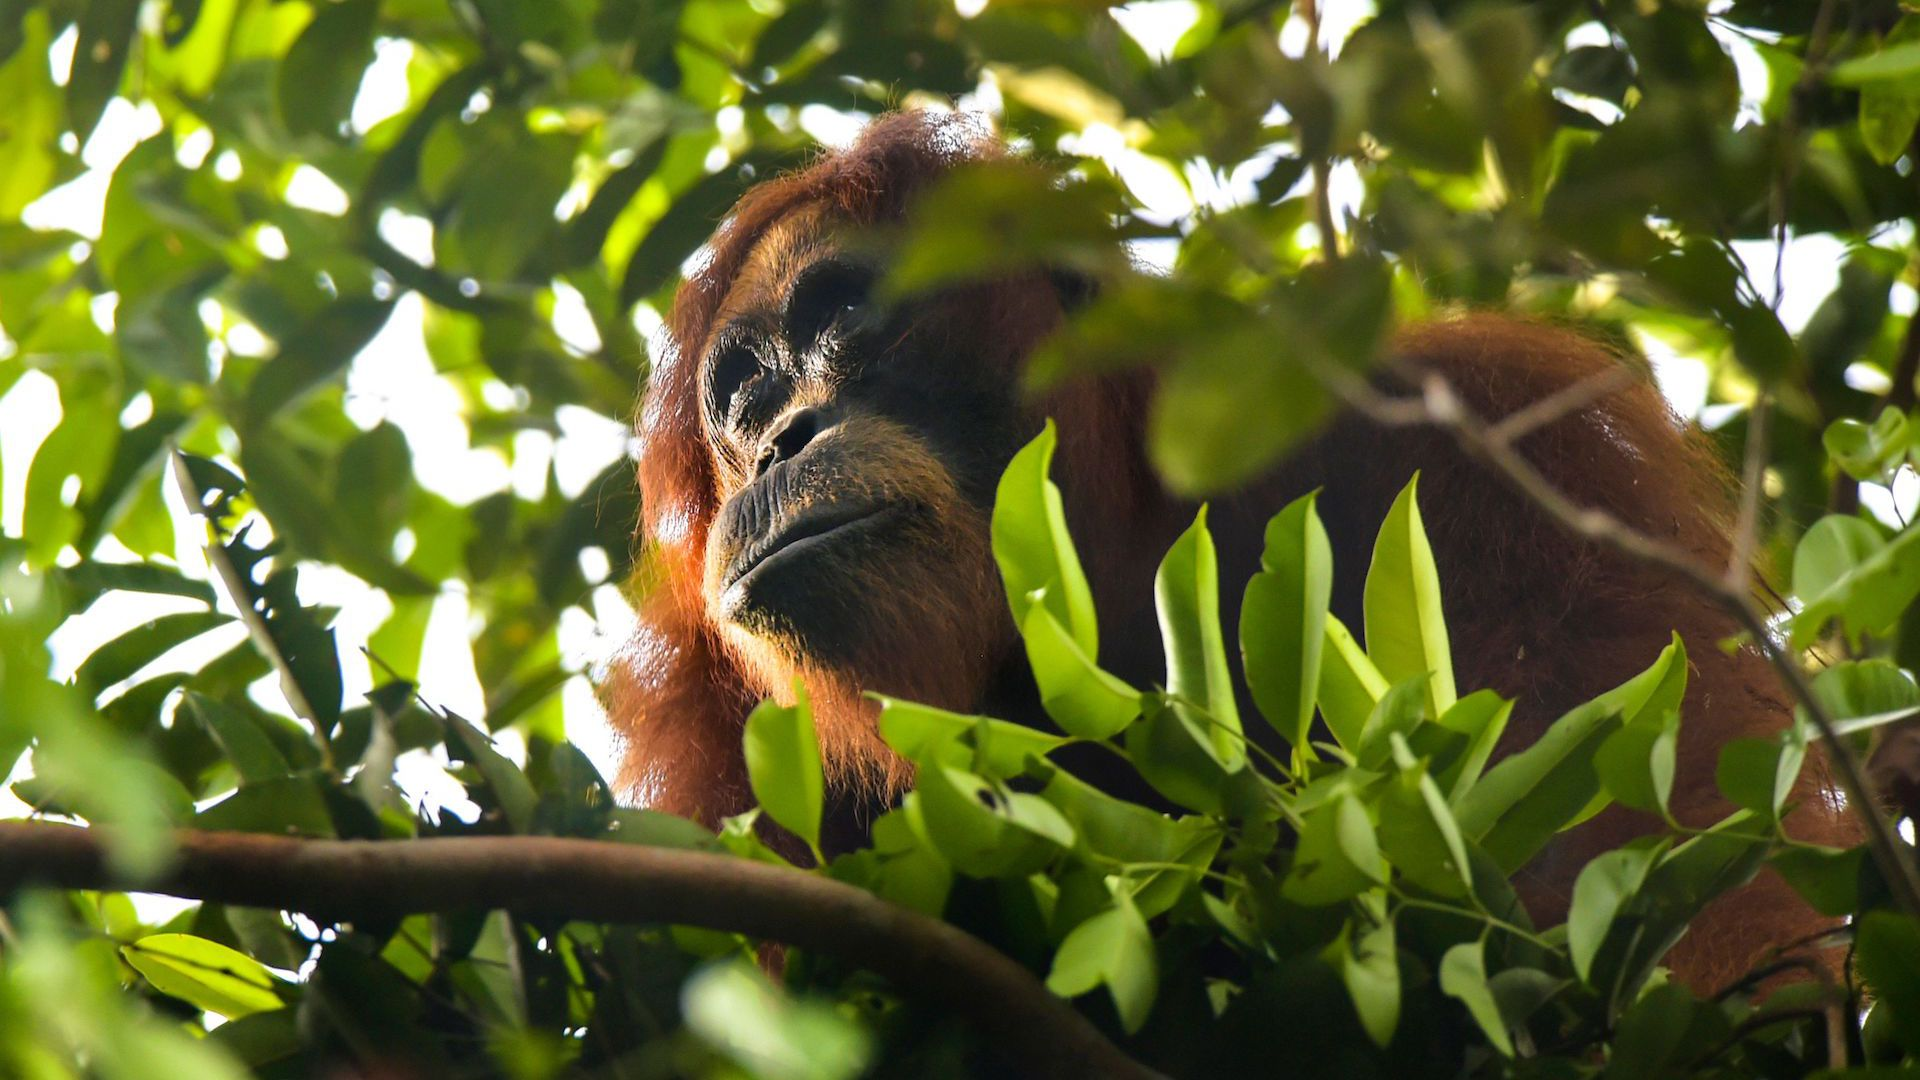 A wild Sumatran orangutan feeding on fruits in Aceh, Indonesia.